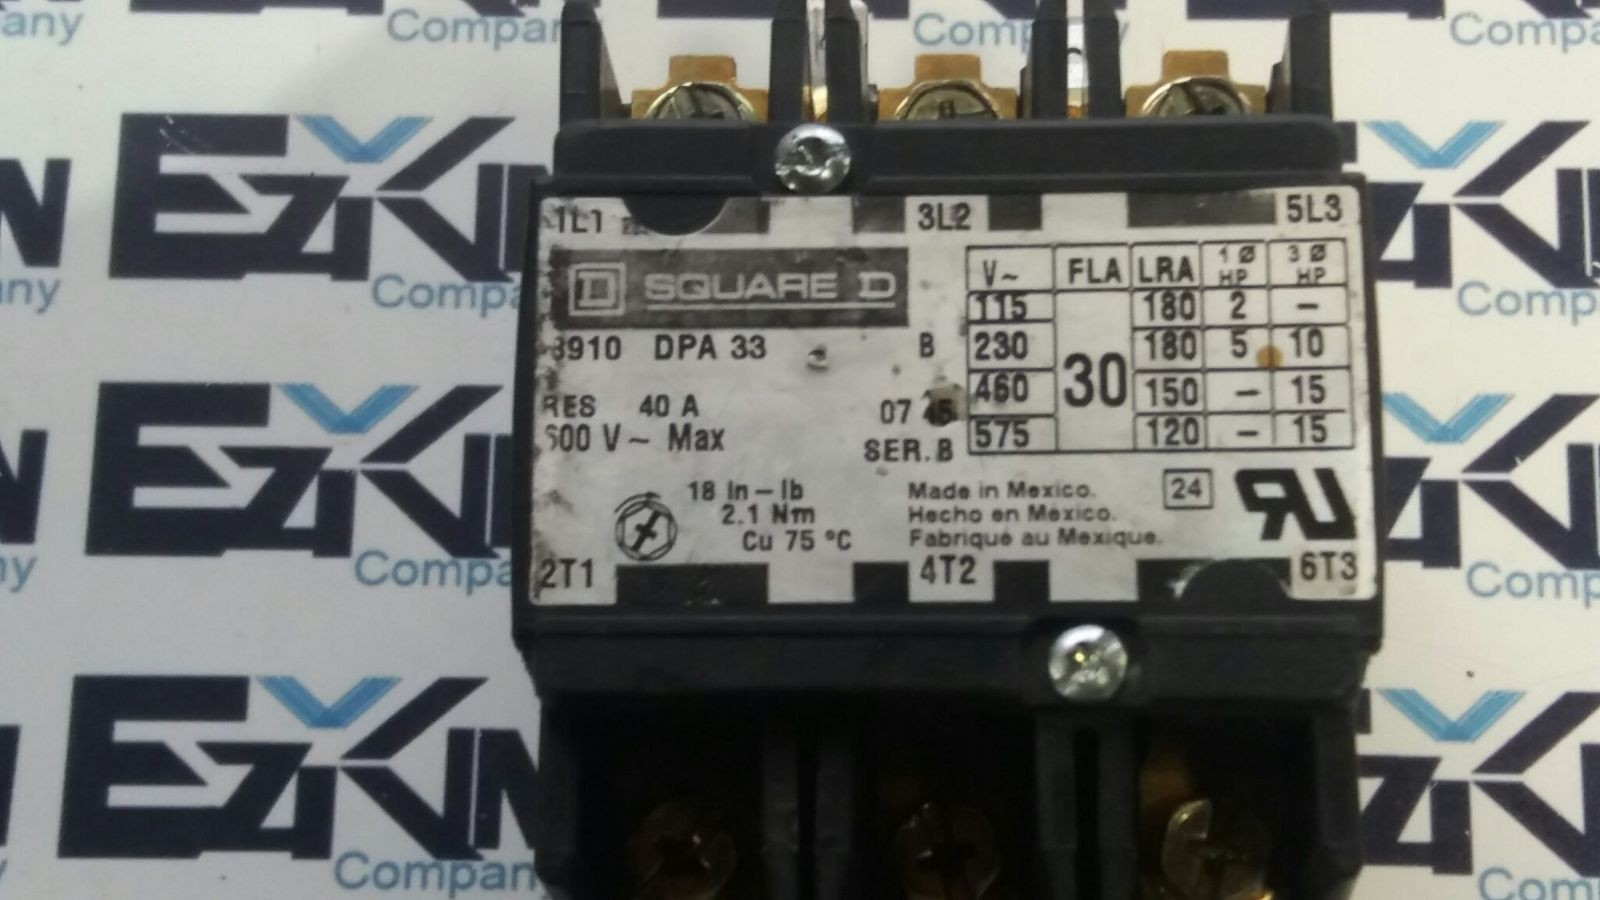 SQUARE D 8910 DPA 43 DEFINITE PURPOSE CONTACTOR